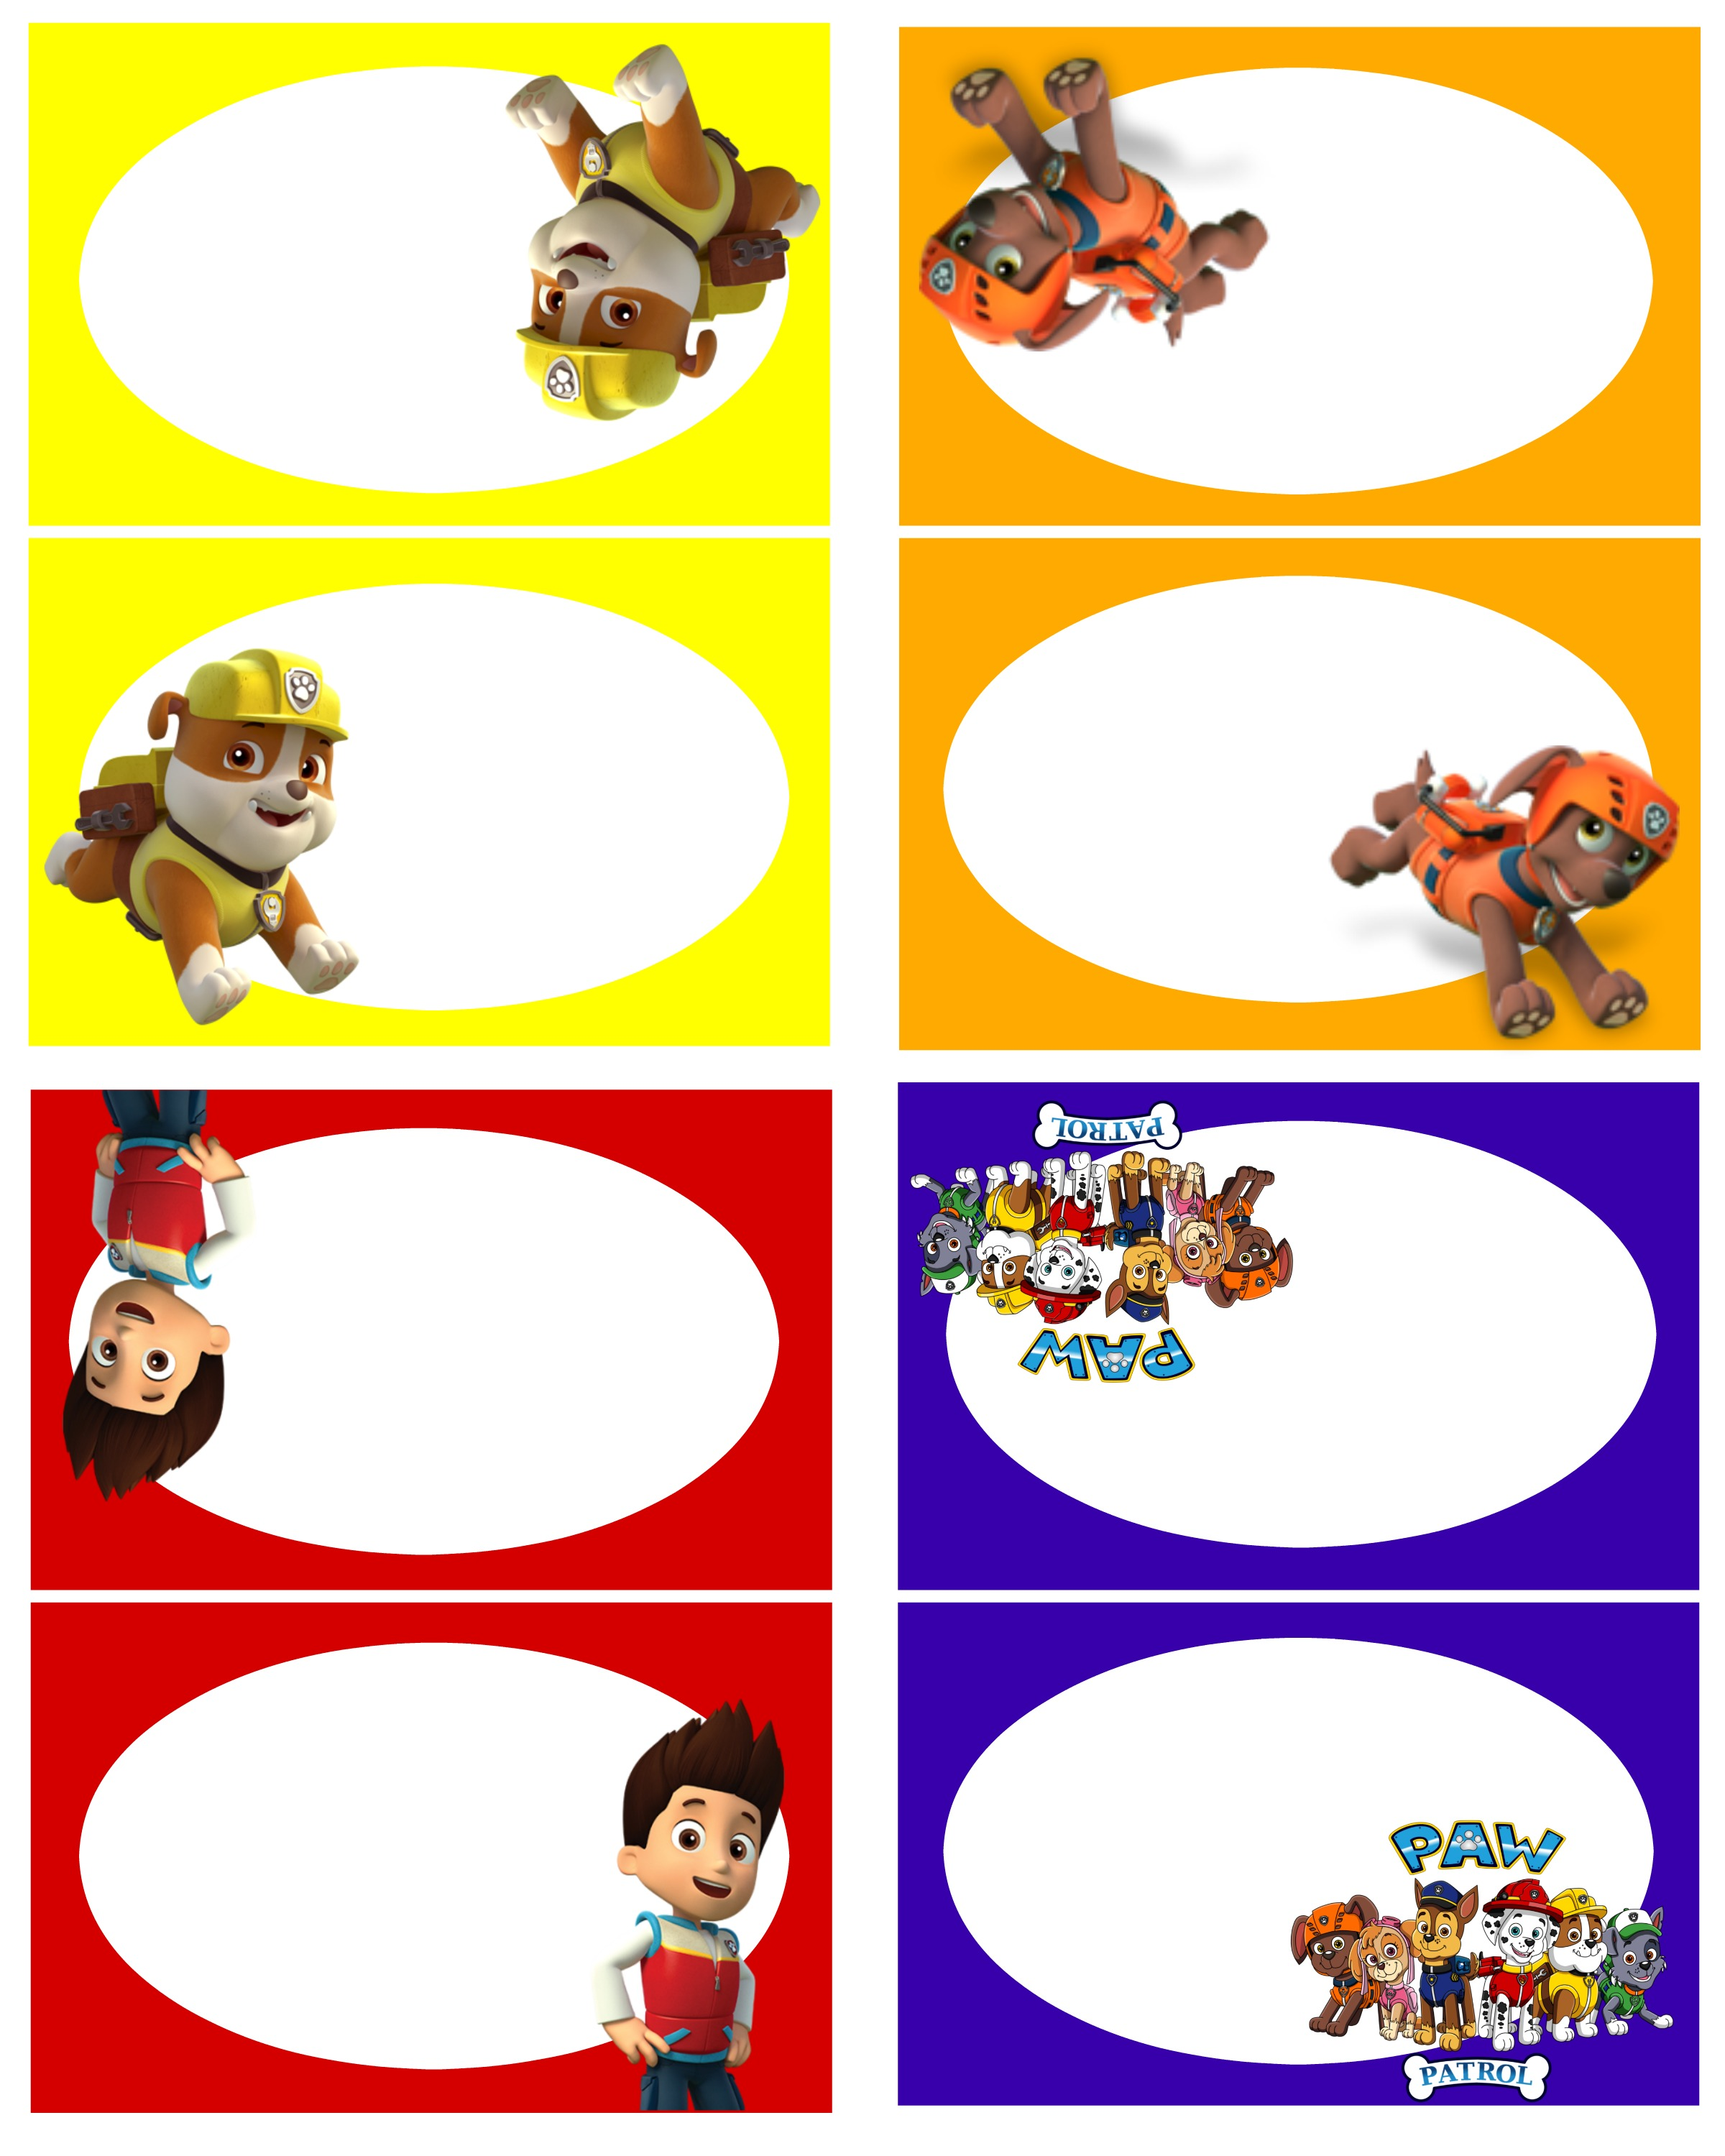 Free printable paw patrol clipart graphic royalty free download Paw Patrol Free Birthday Party Printables! - Delicate Construction graphic royalty free download